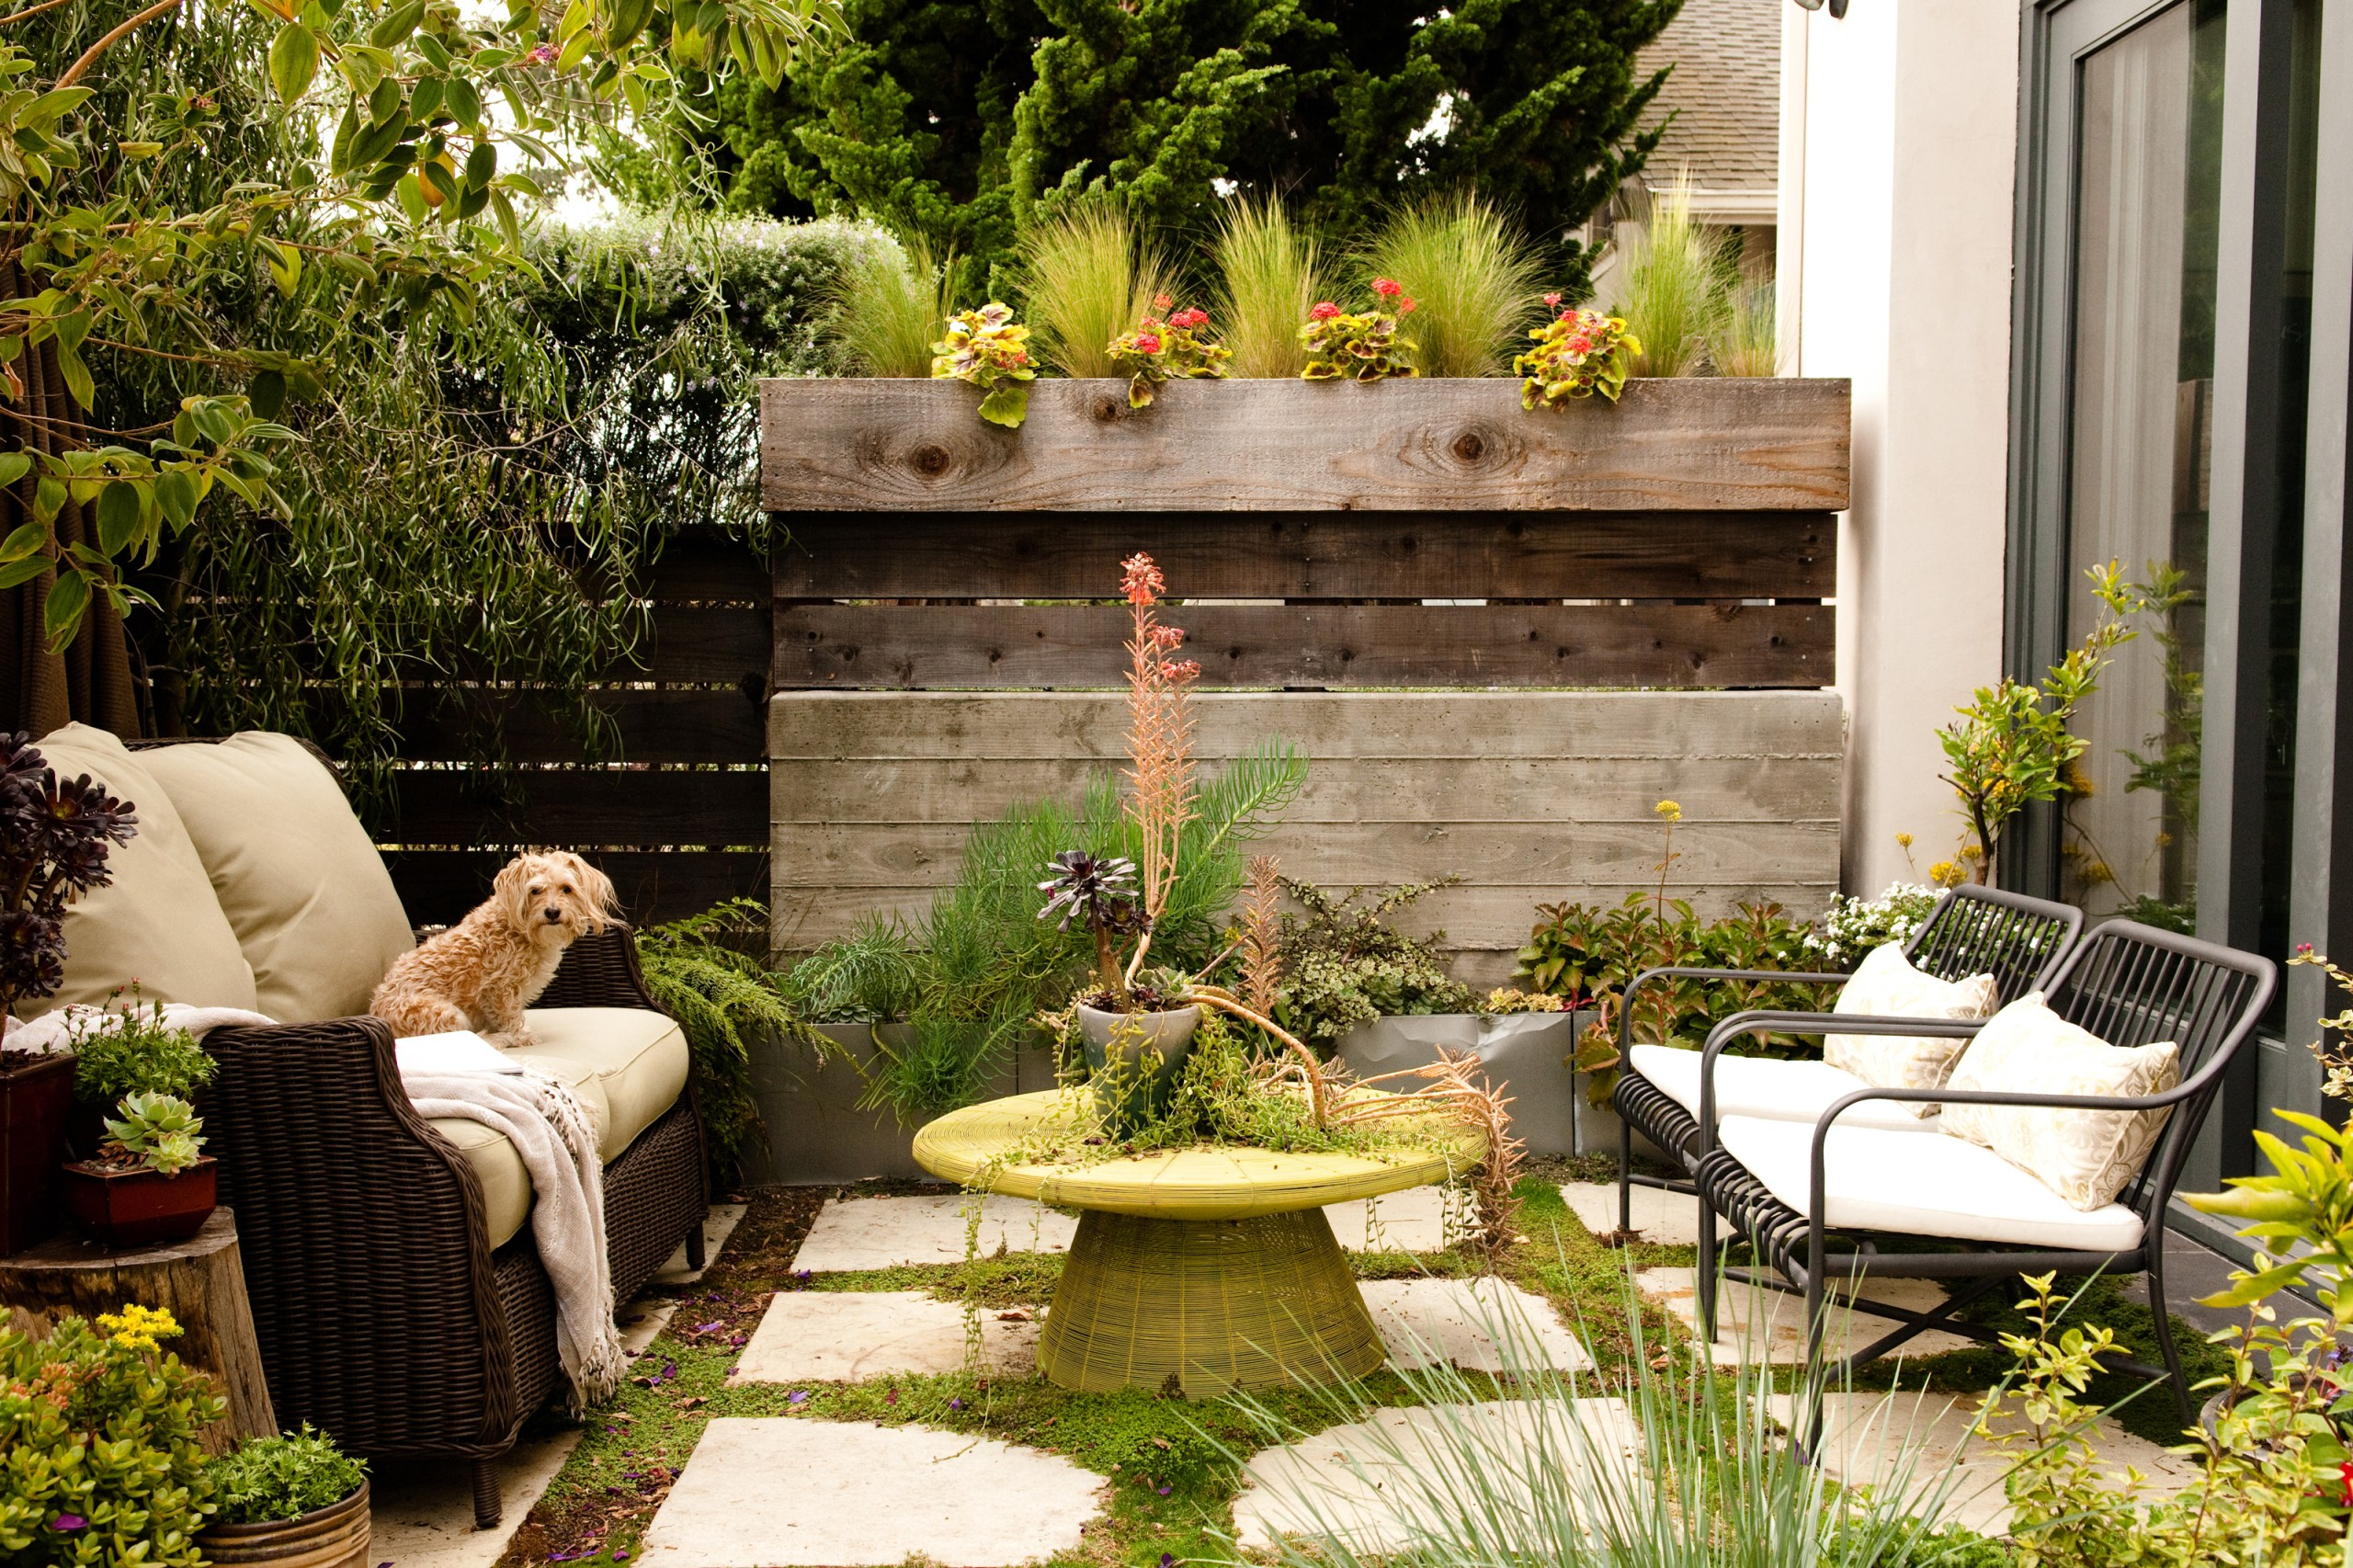 Small Backyard Ideas   How To Make a Small Space Look Bigger on Small Backyard Renovations id=63988